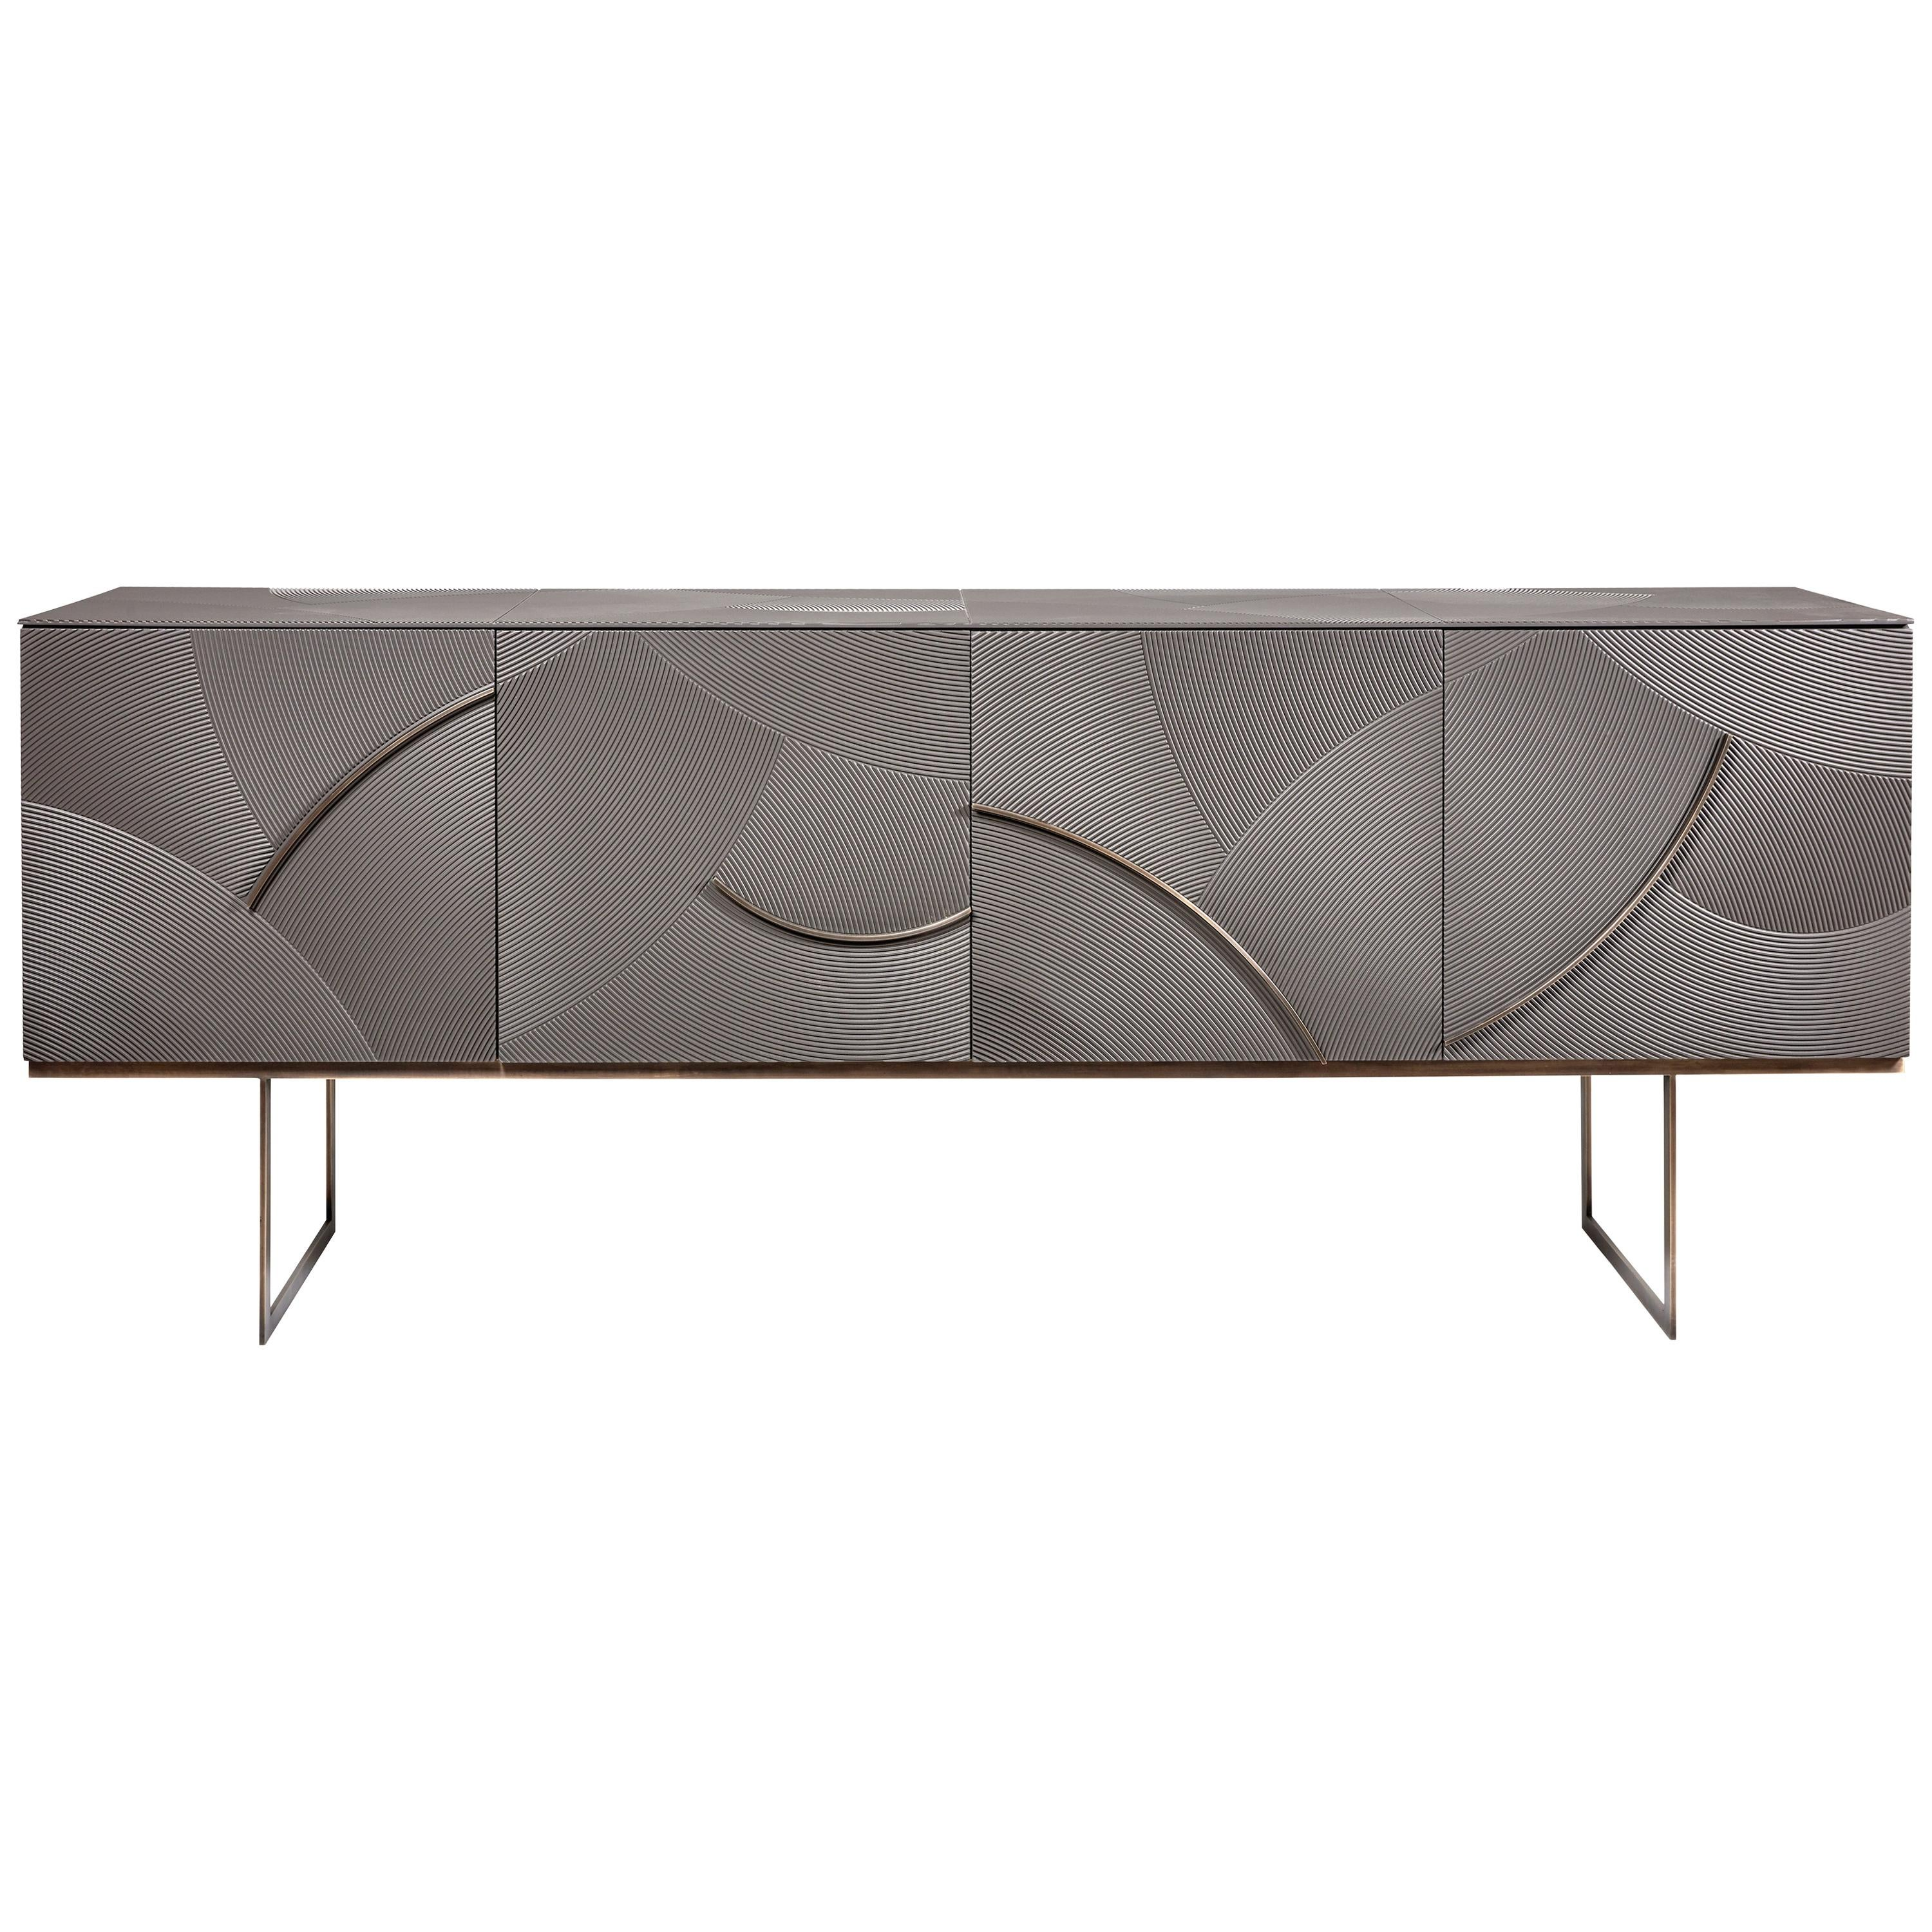 Cloud Sideboard, Carved, Flowing Waves Accented with Metal Legs and Detail